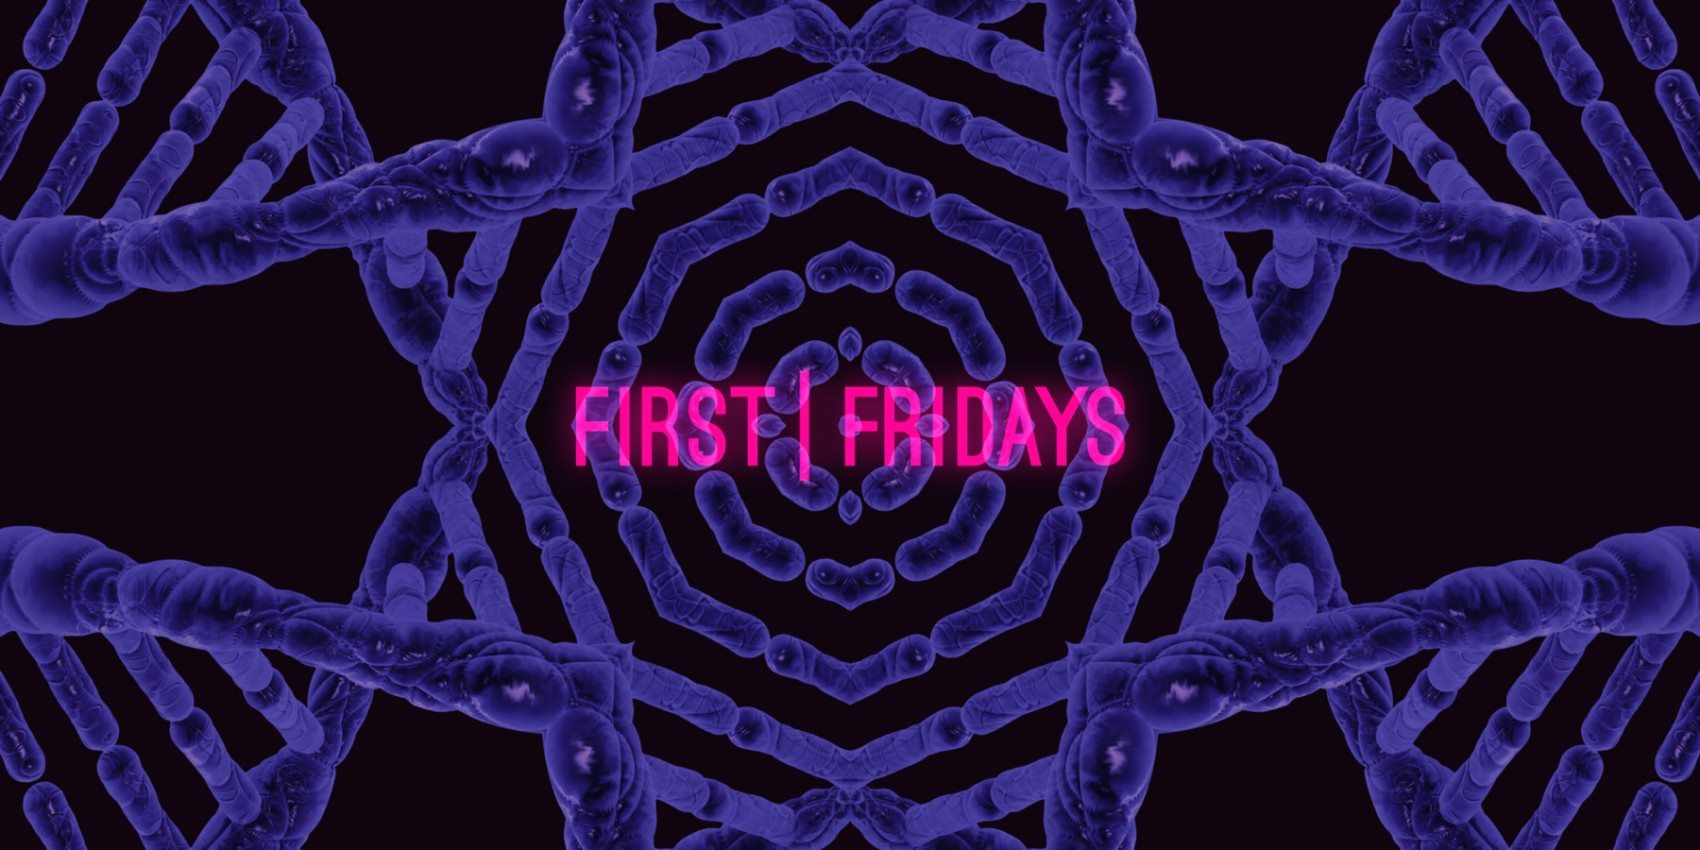 First Fridays at Natural History Museum Los Angeles